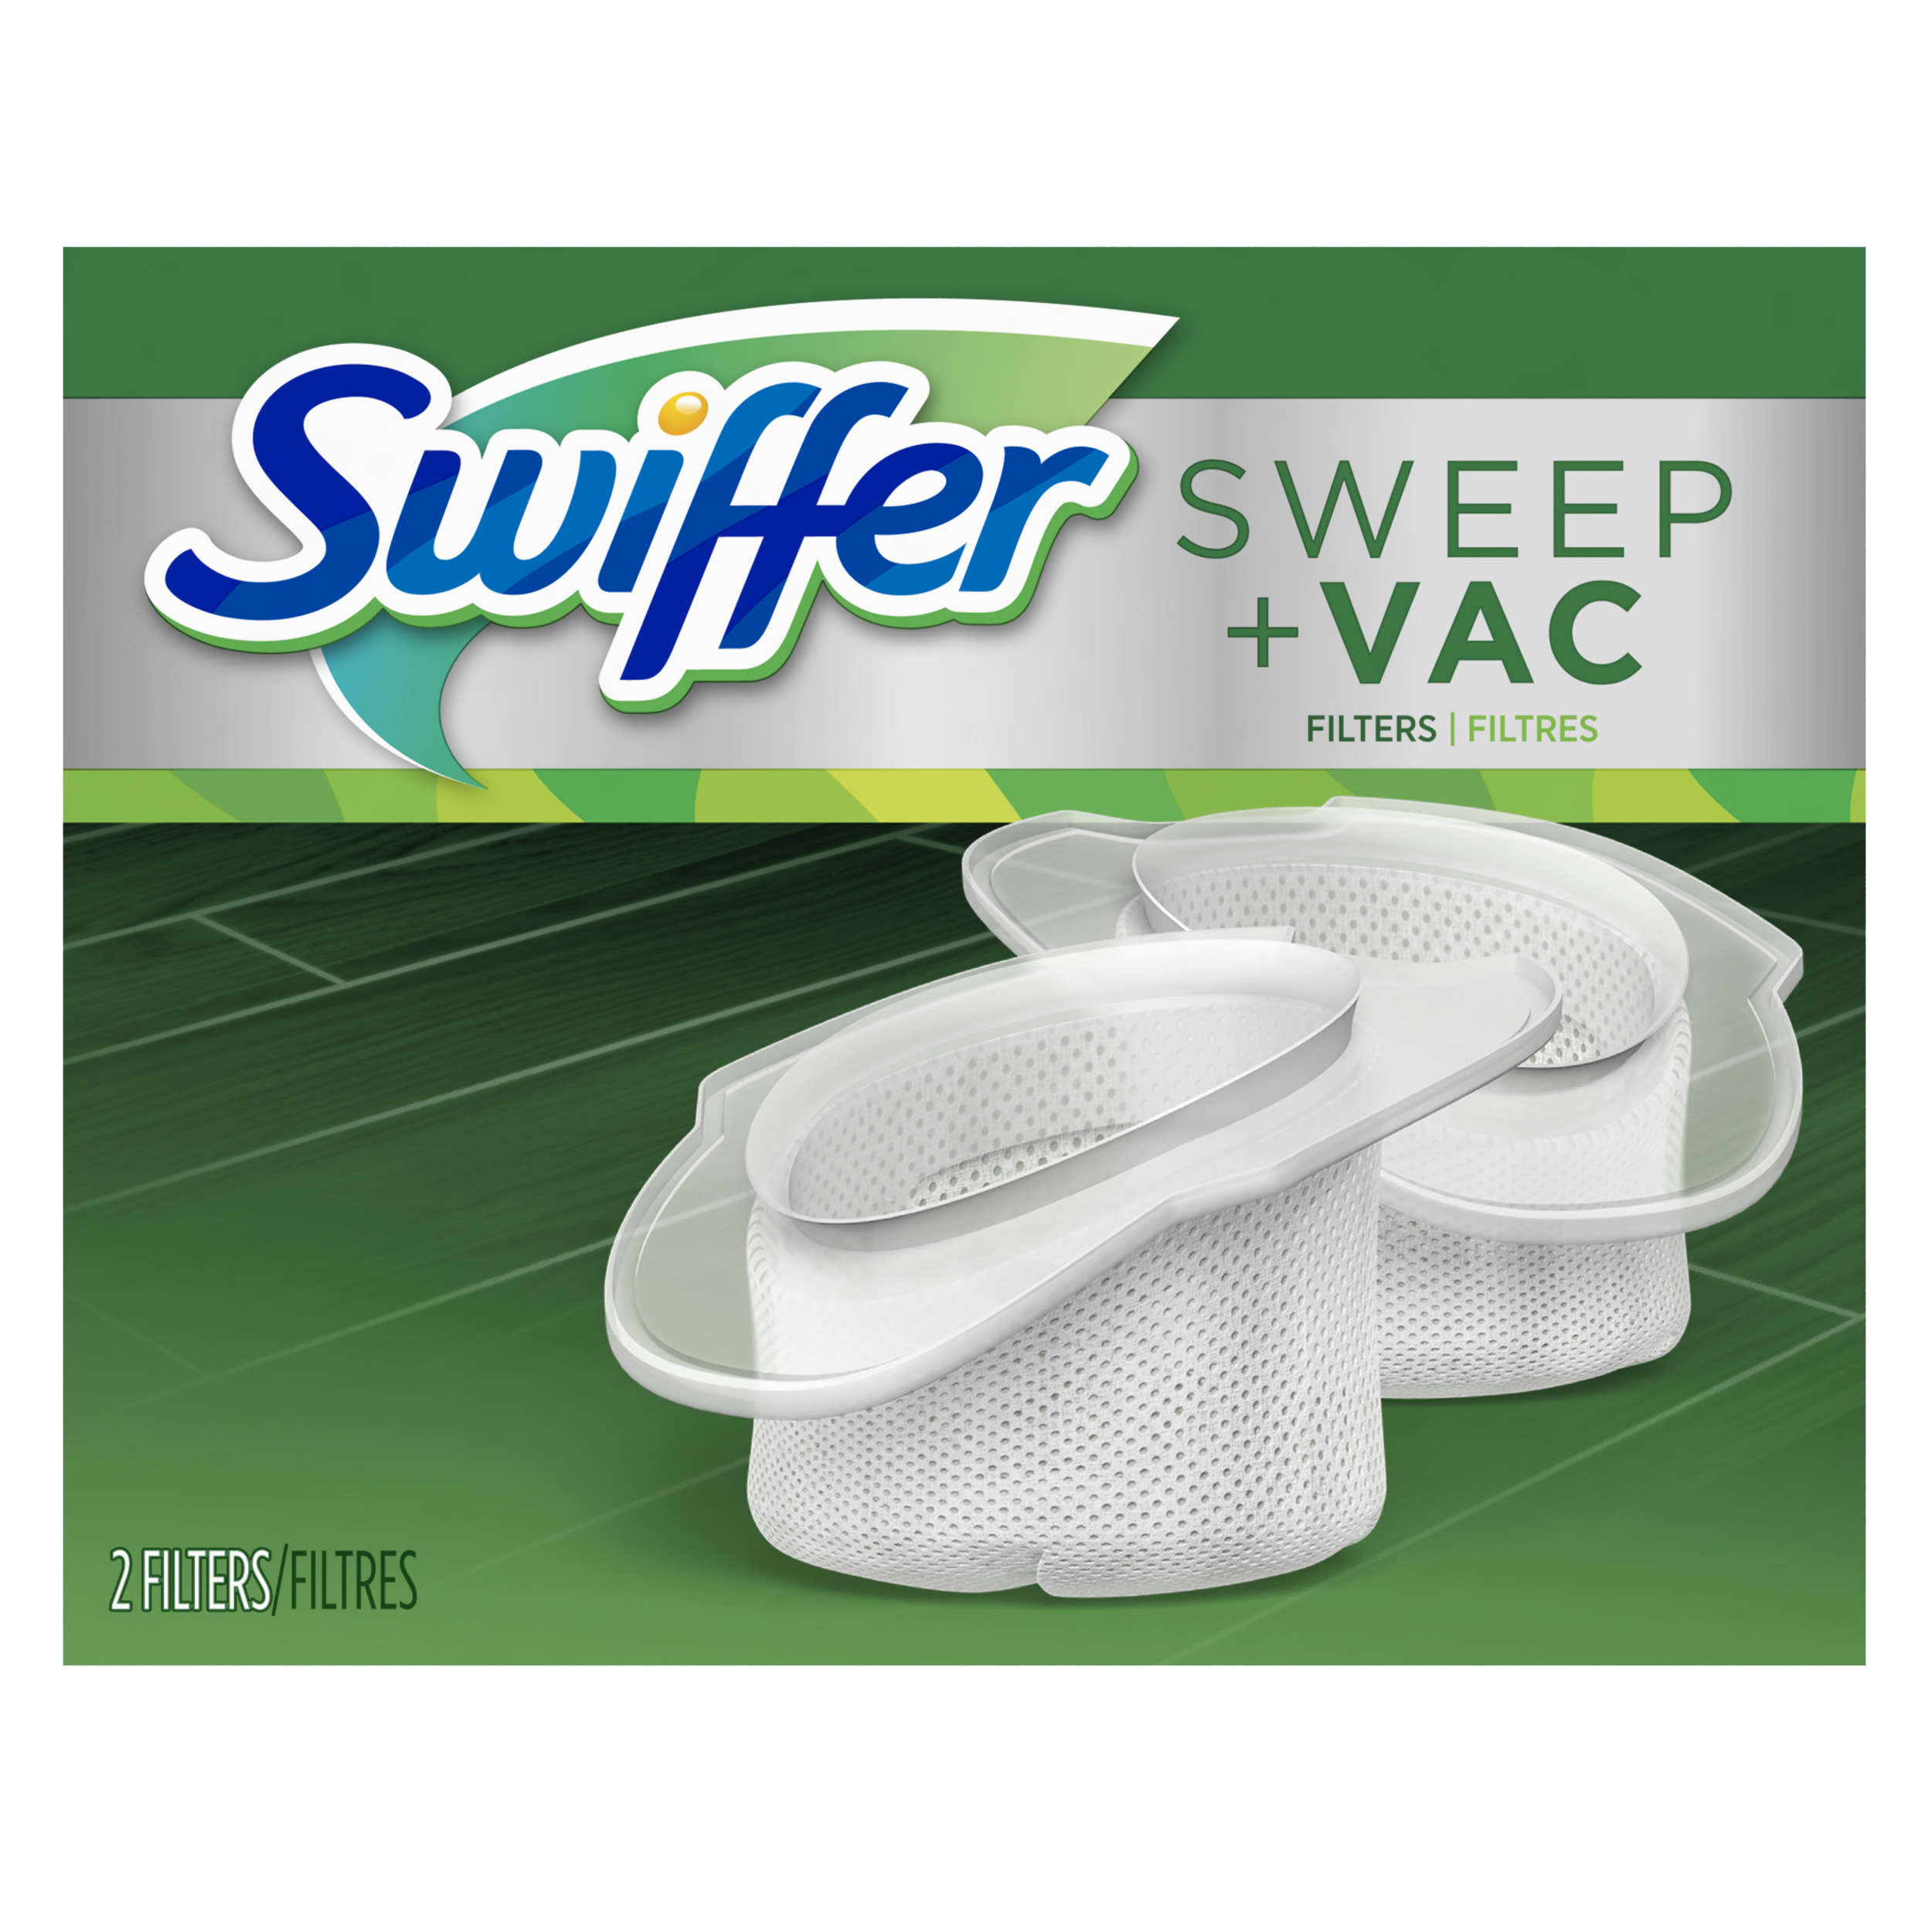 Swiffer Sweep + Vac Vacuum Replacement Filter 2 Count